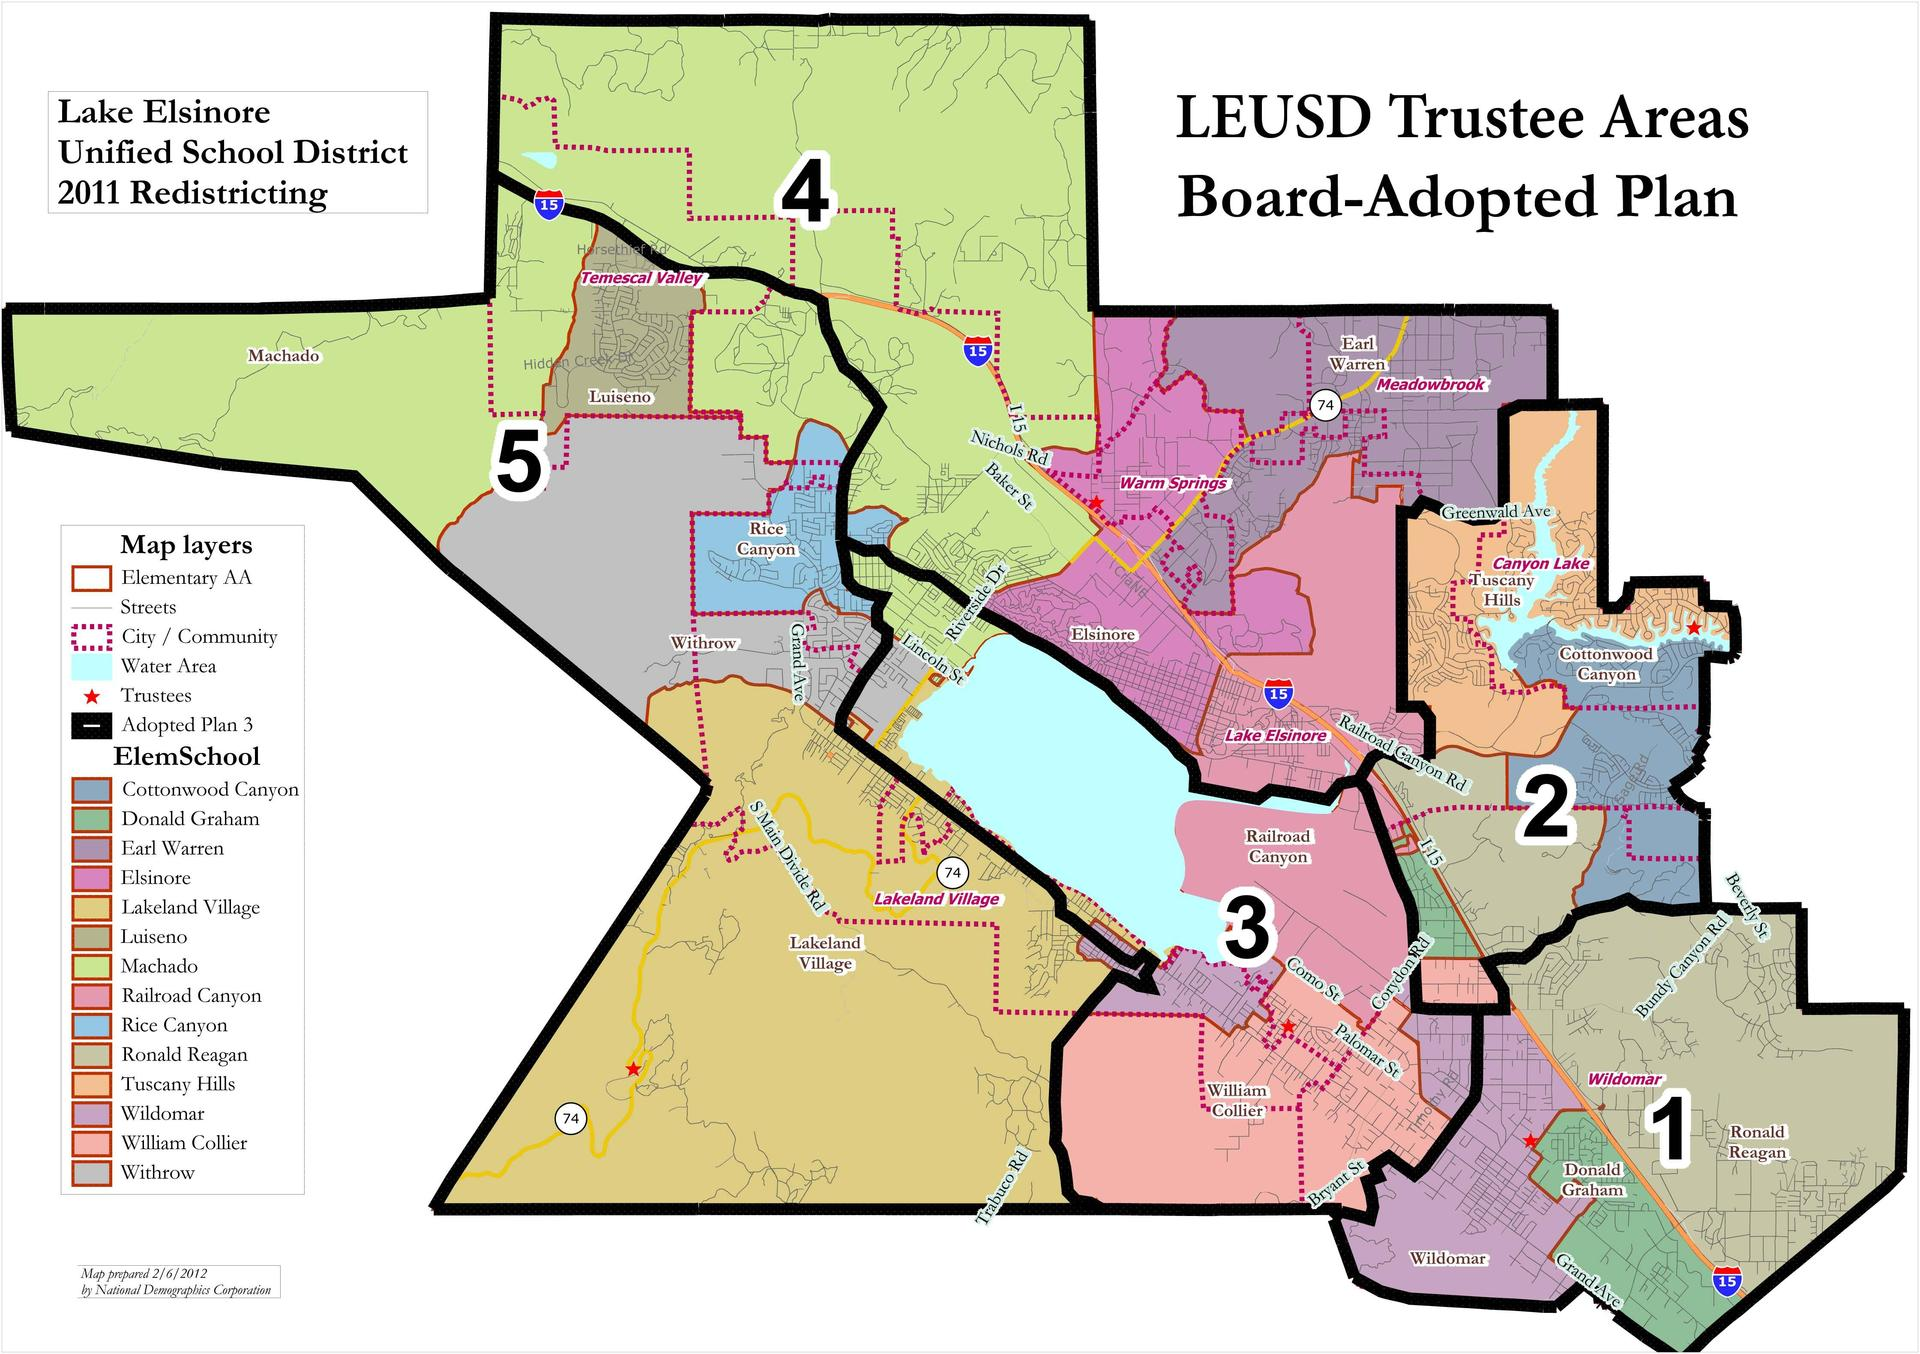 Map of LEUSD Trustee Areas (all, board approved plan 3)